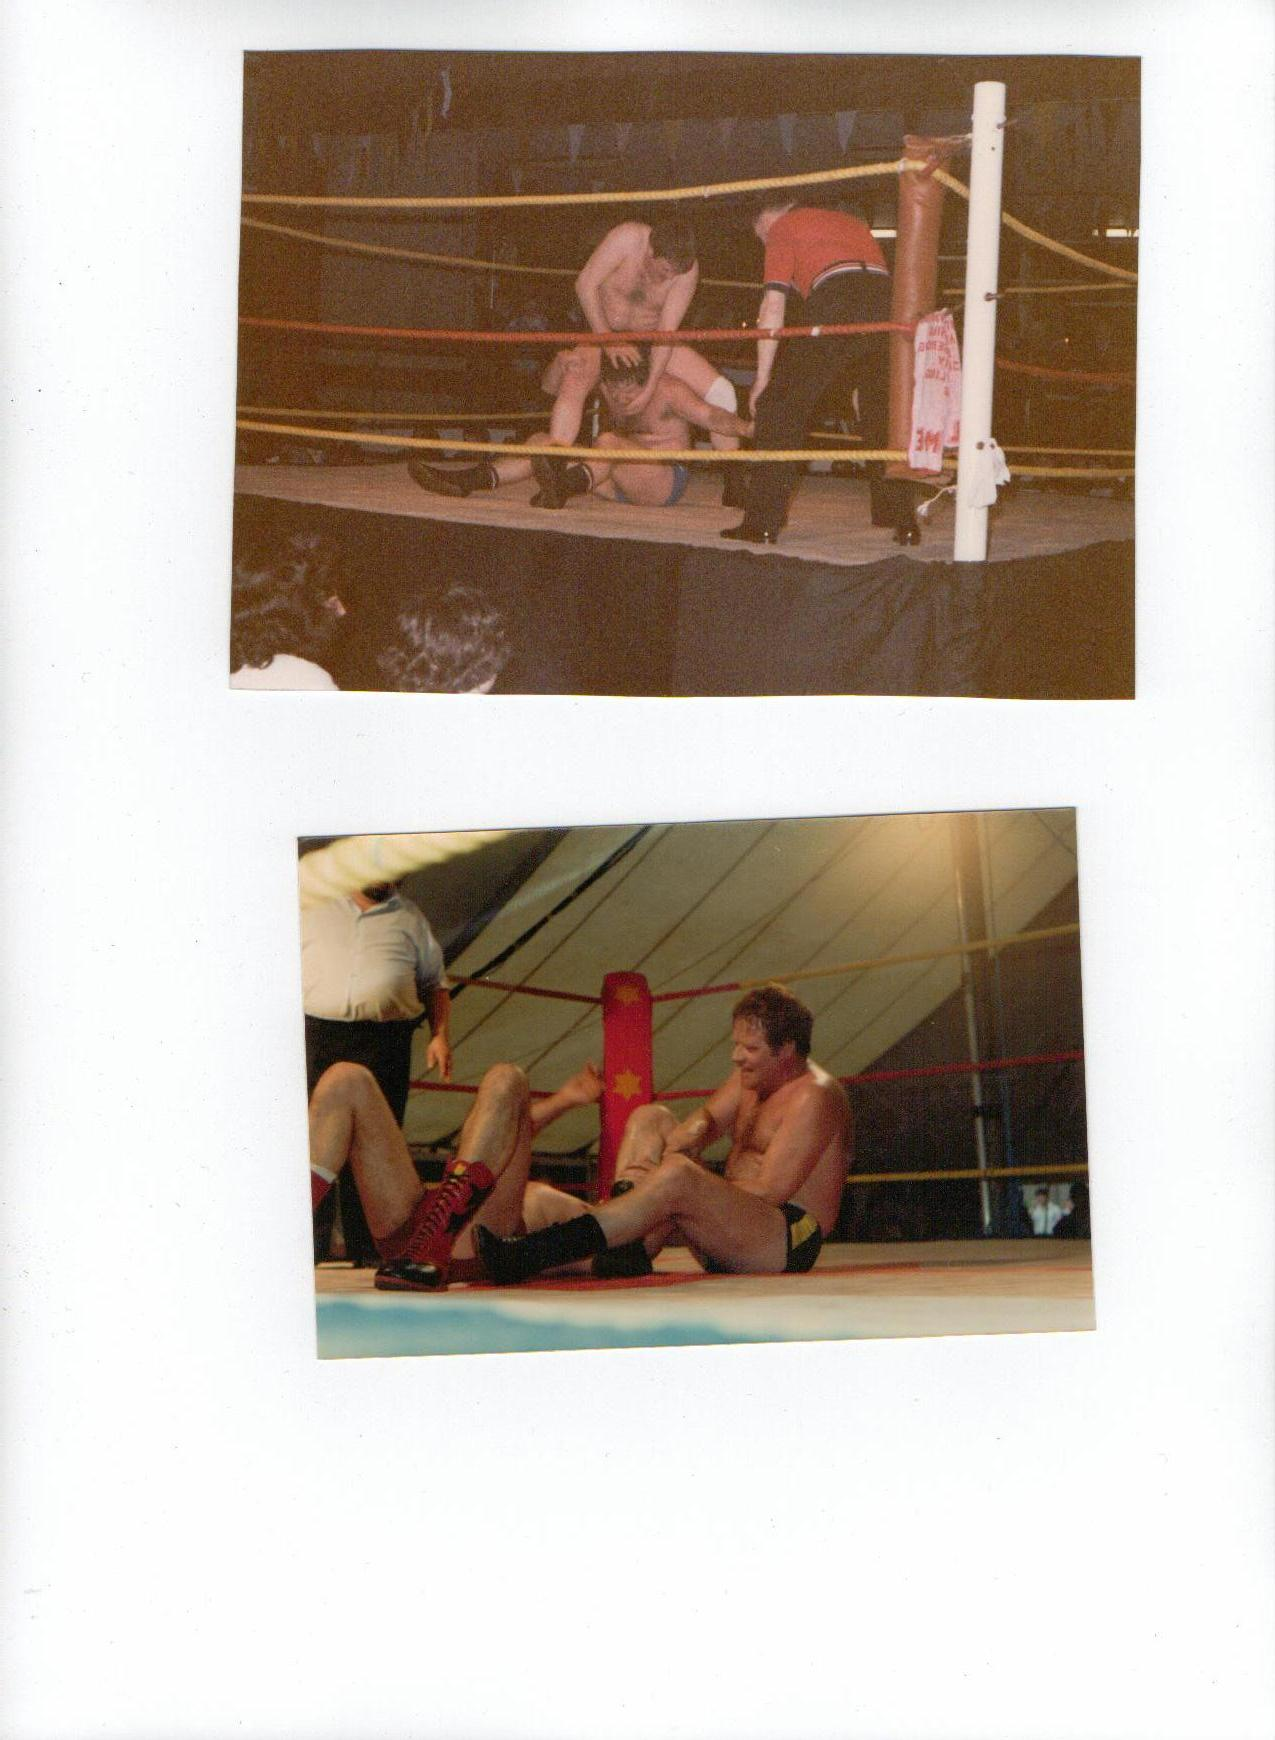 Two wrestling shots